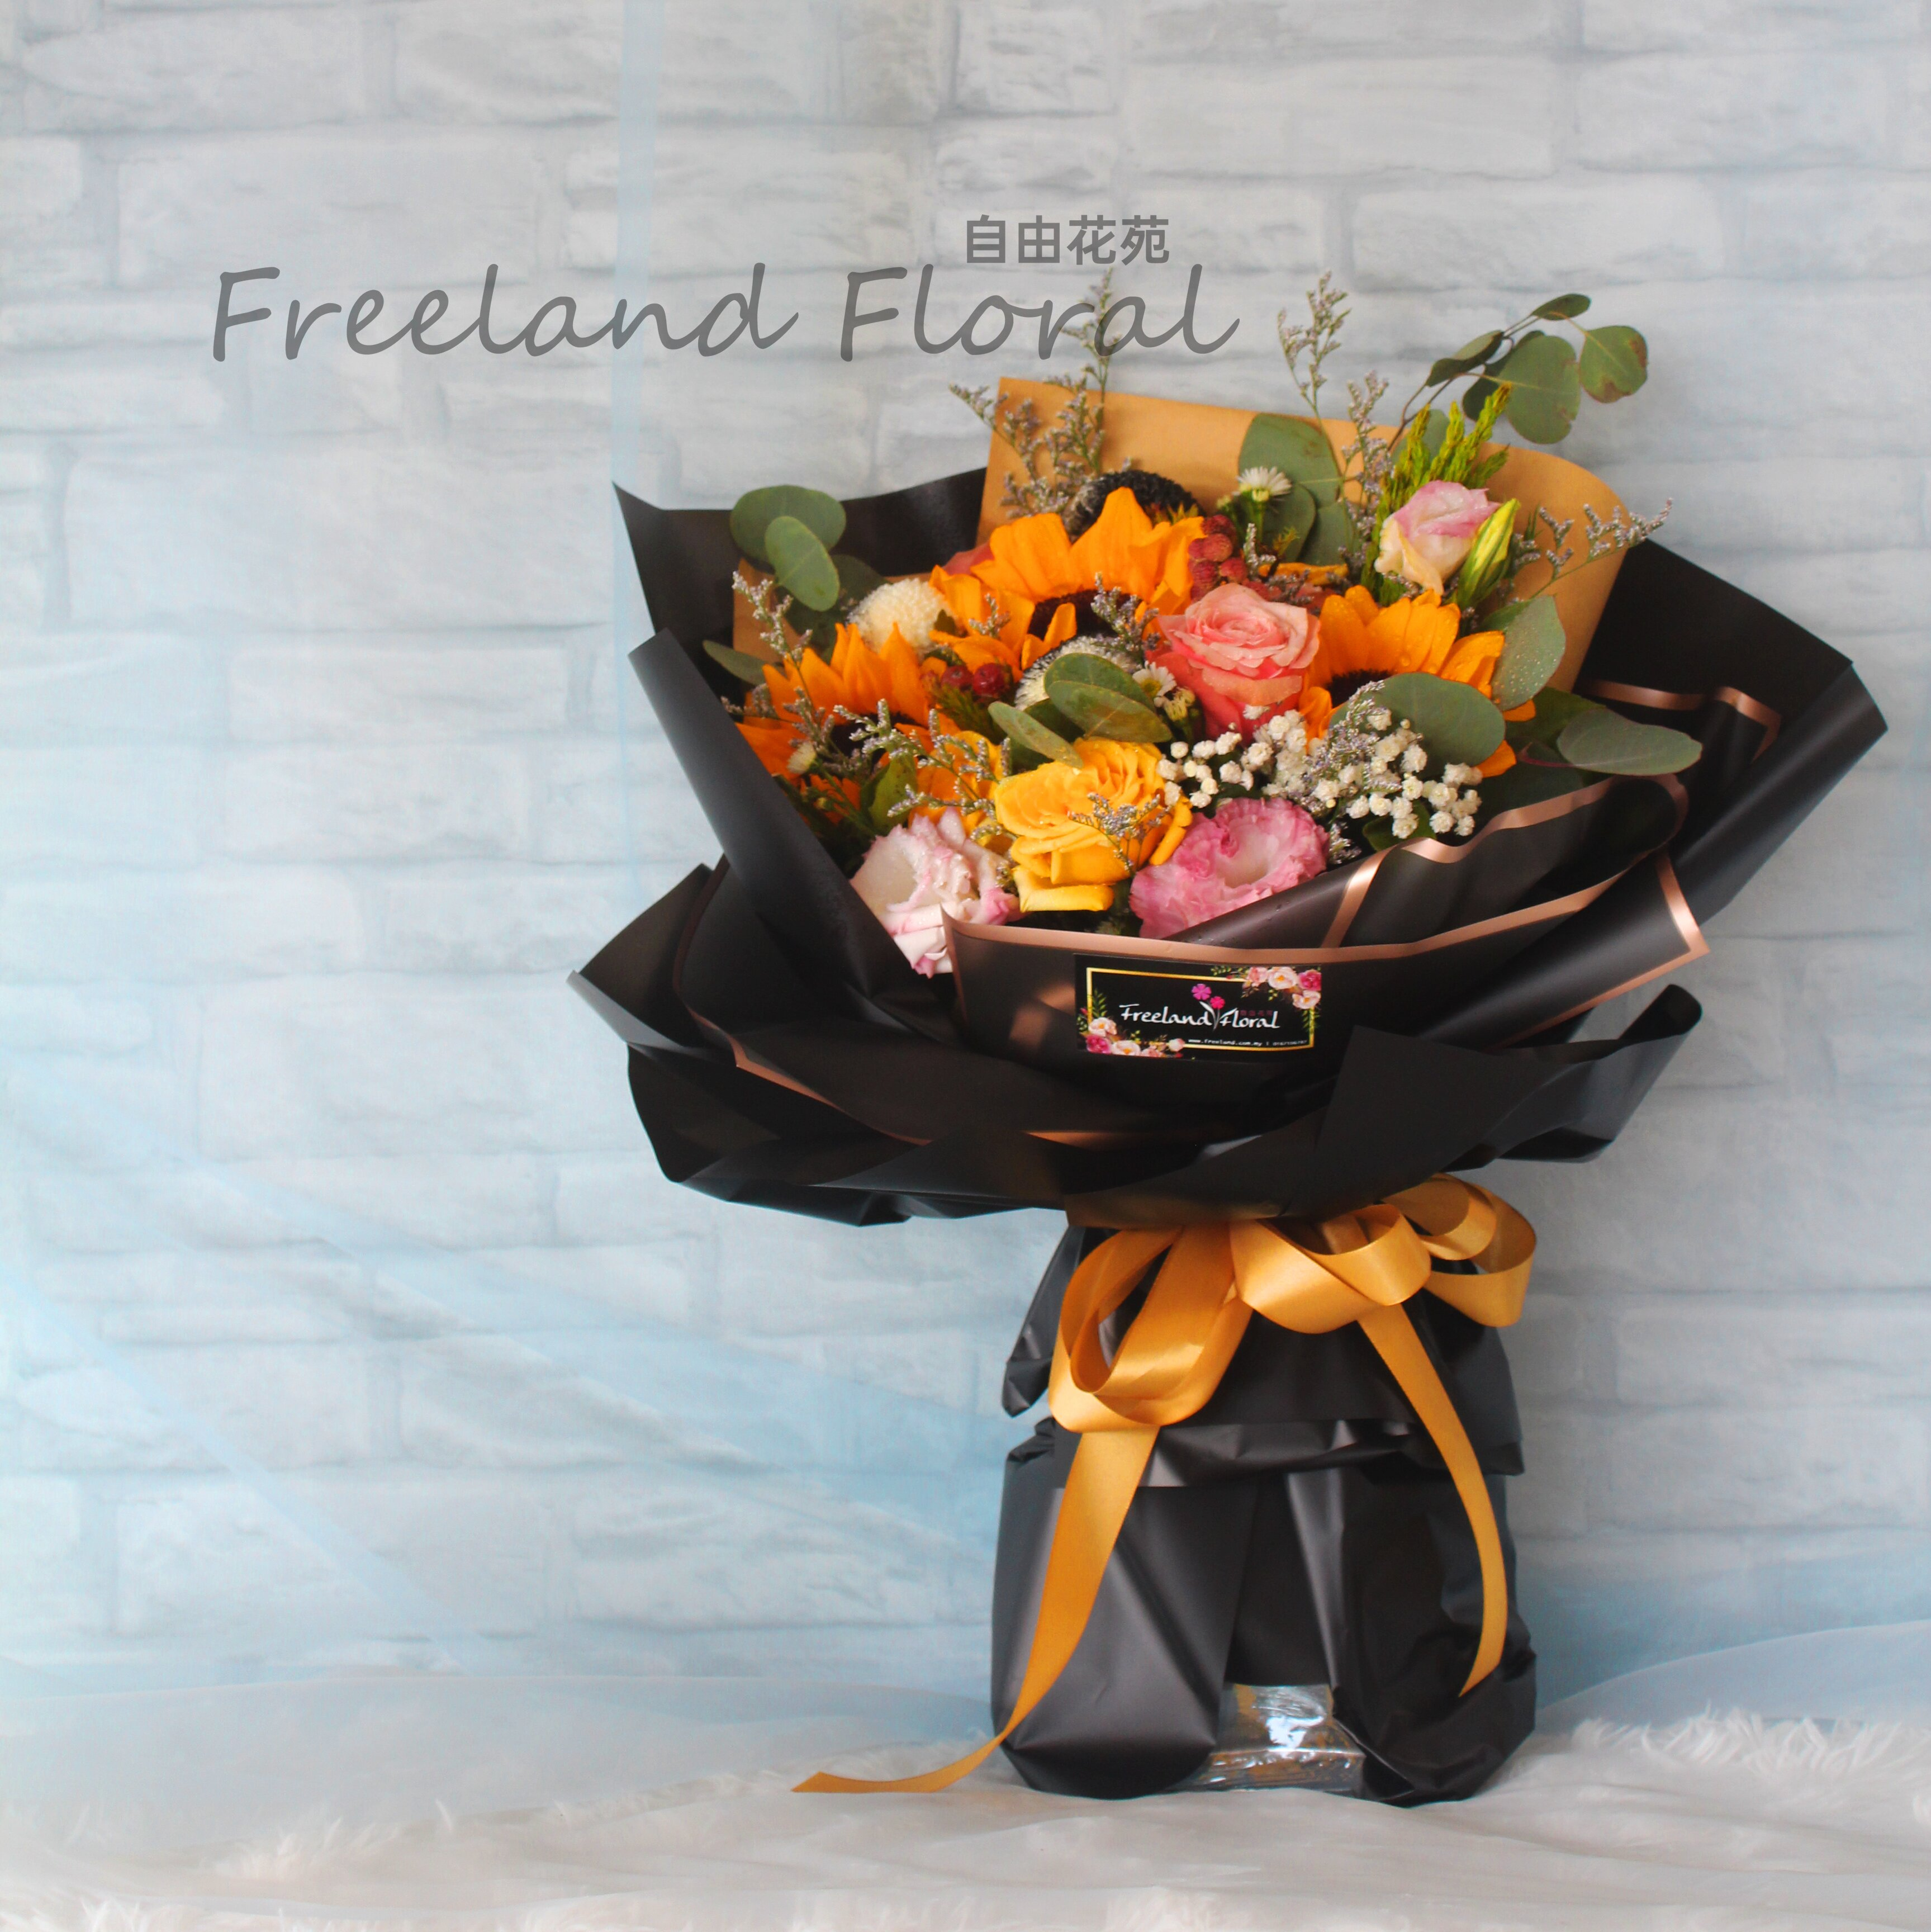 You Are The Sunshine - Freeland Floral 自由花苑